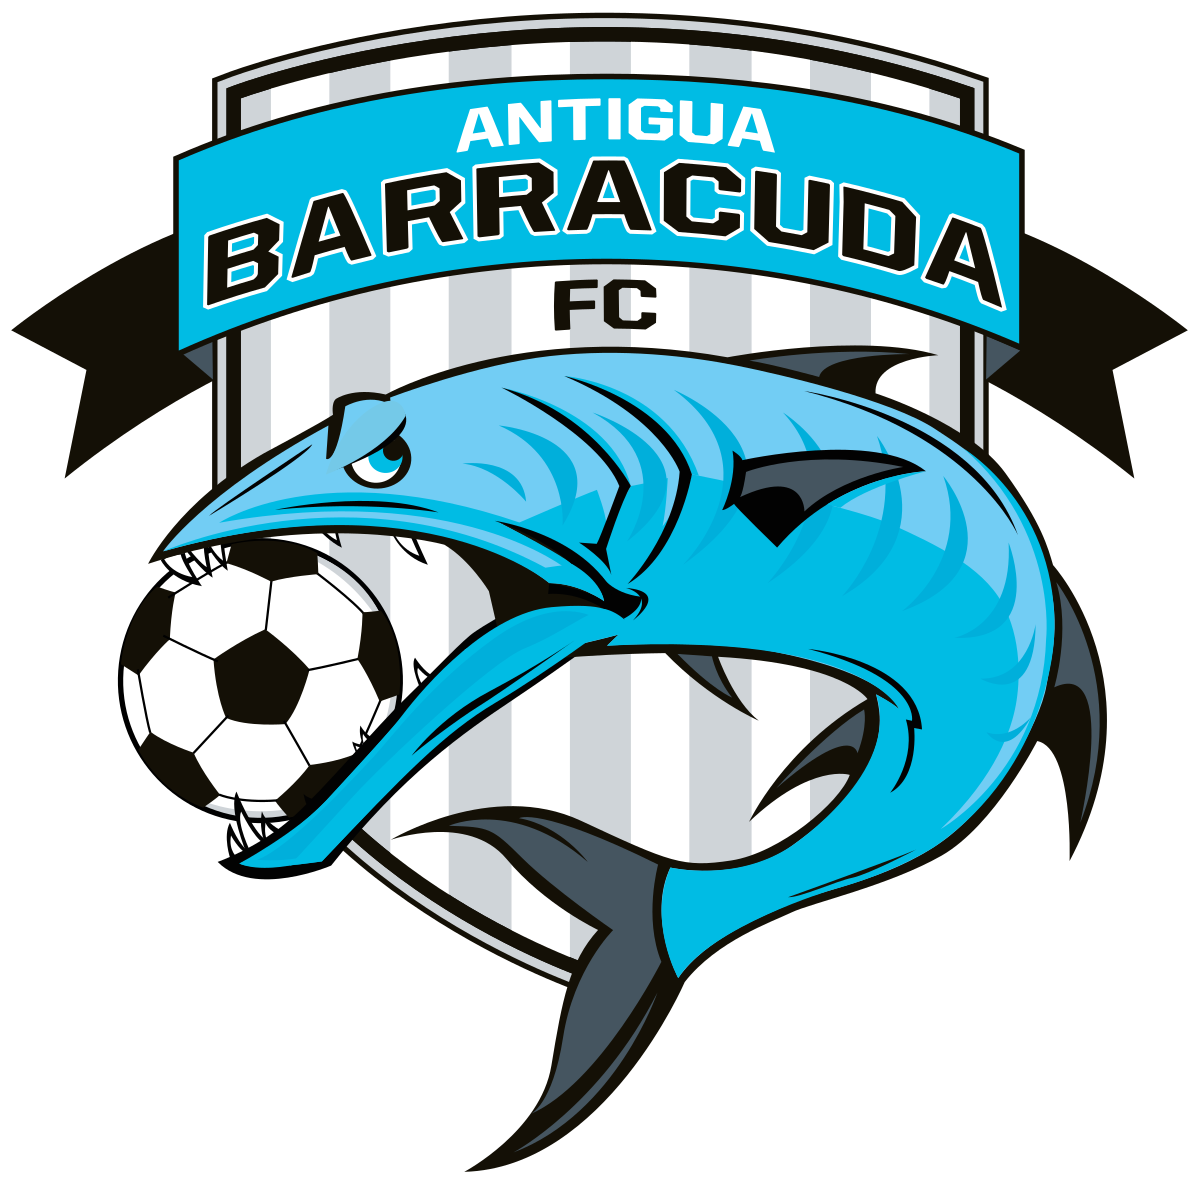 Antigua Barracuda FC.